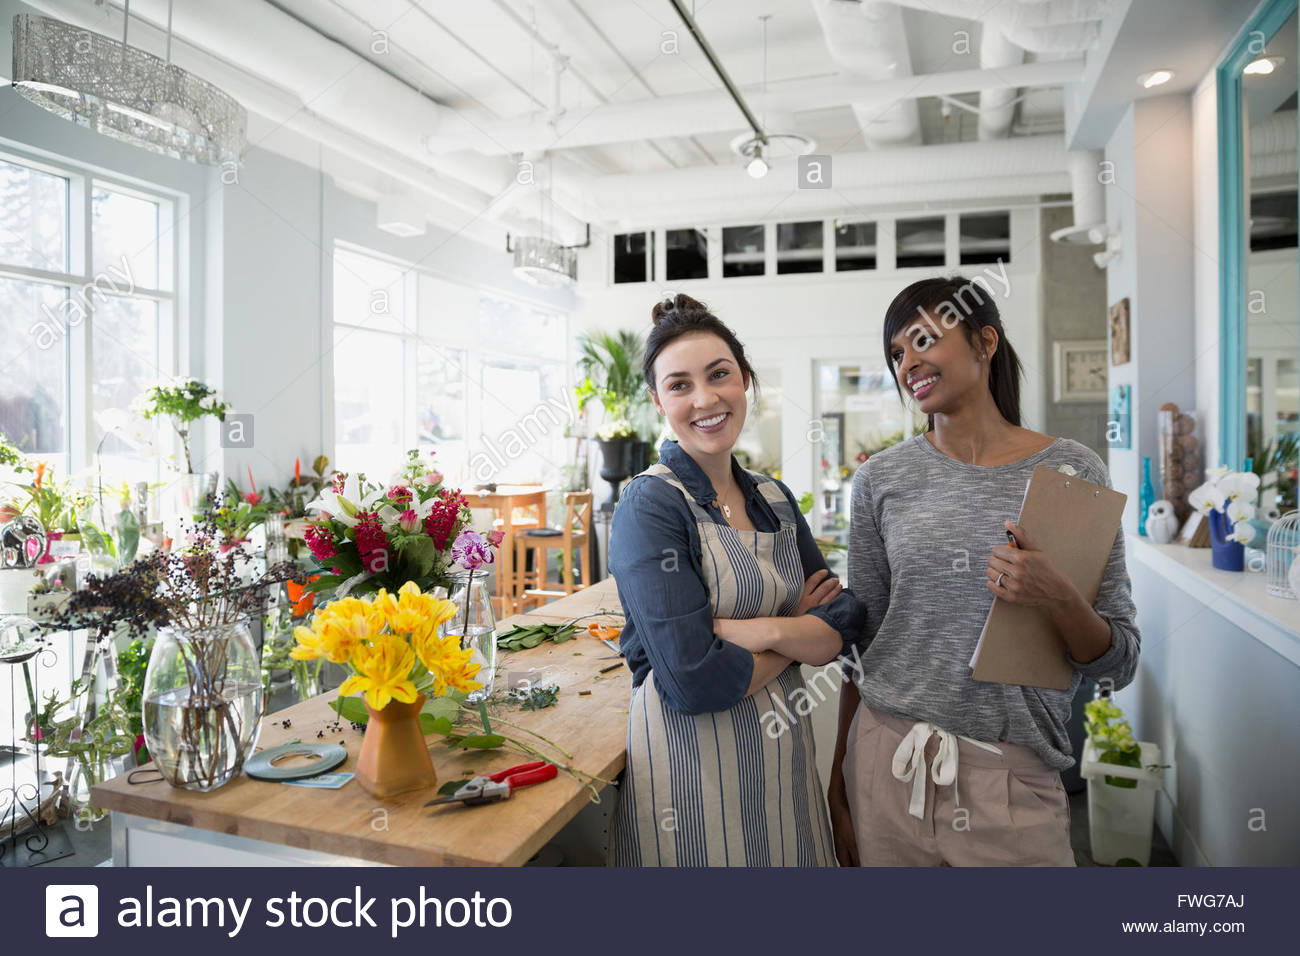 Smiling florists in flower shop - Stock Image